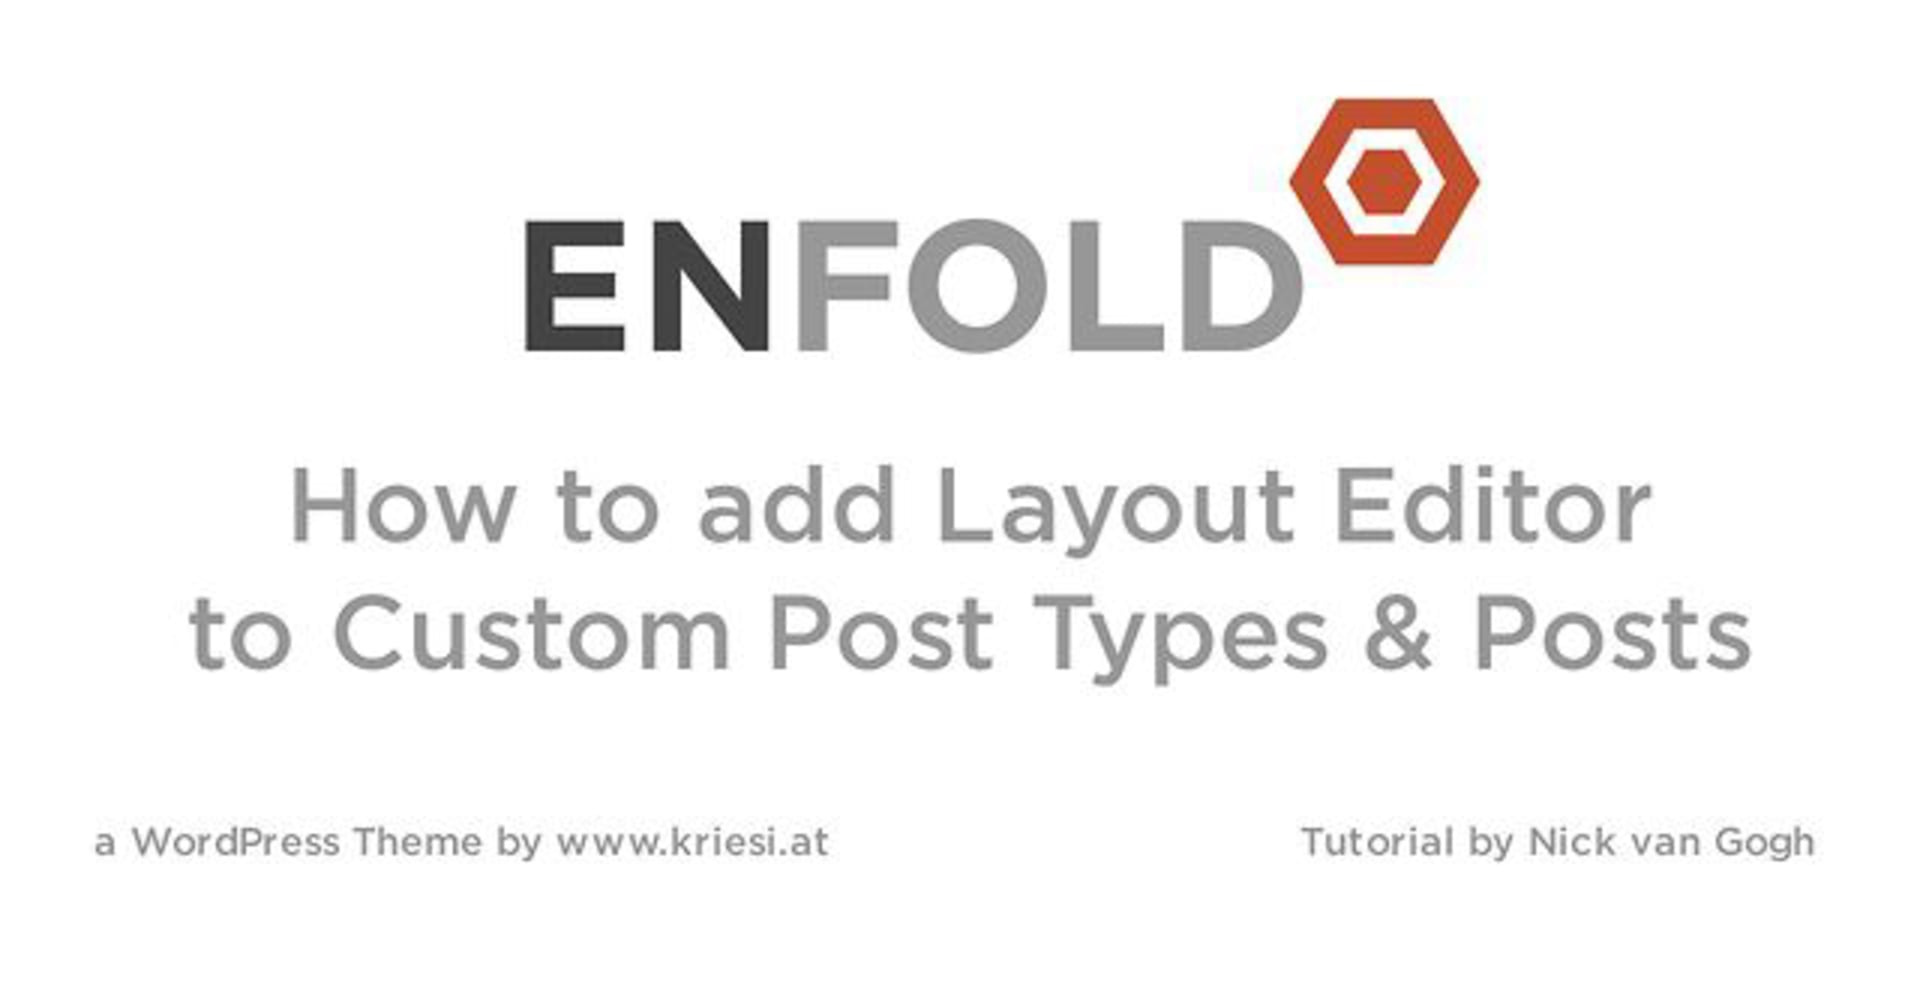 Enfold Theme Tutorial: Adding Layout Builder to Custom Post Types